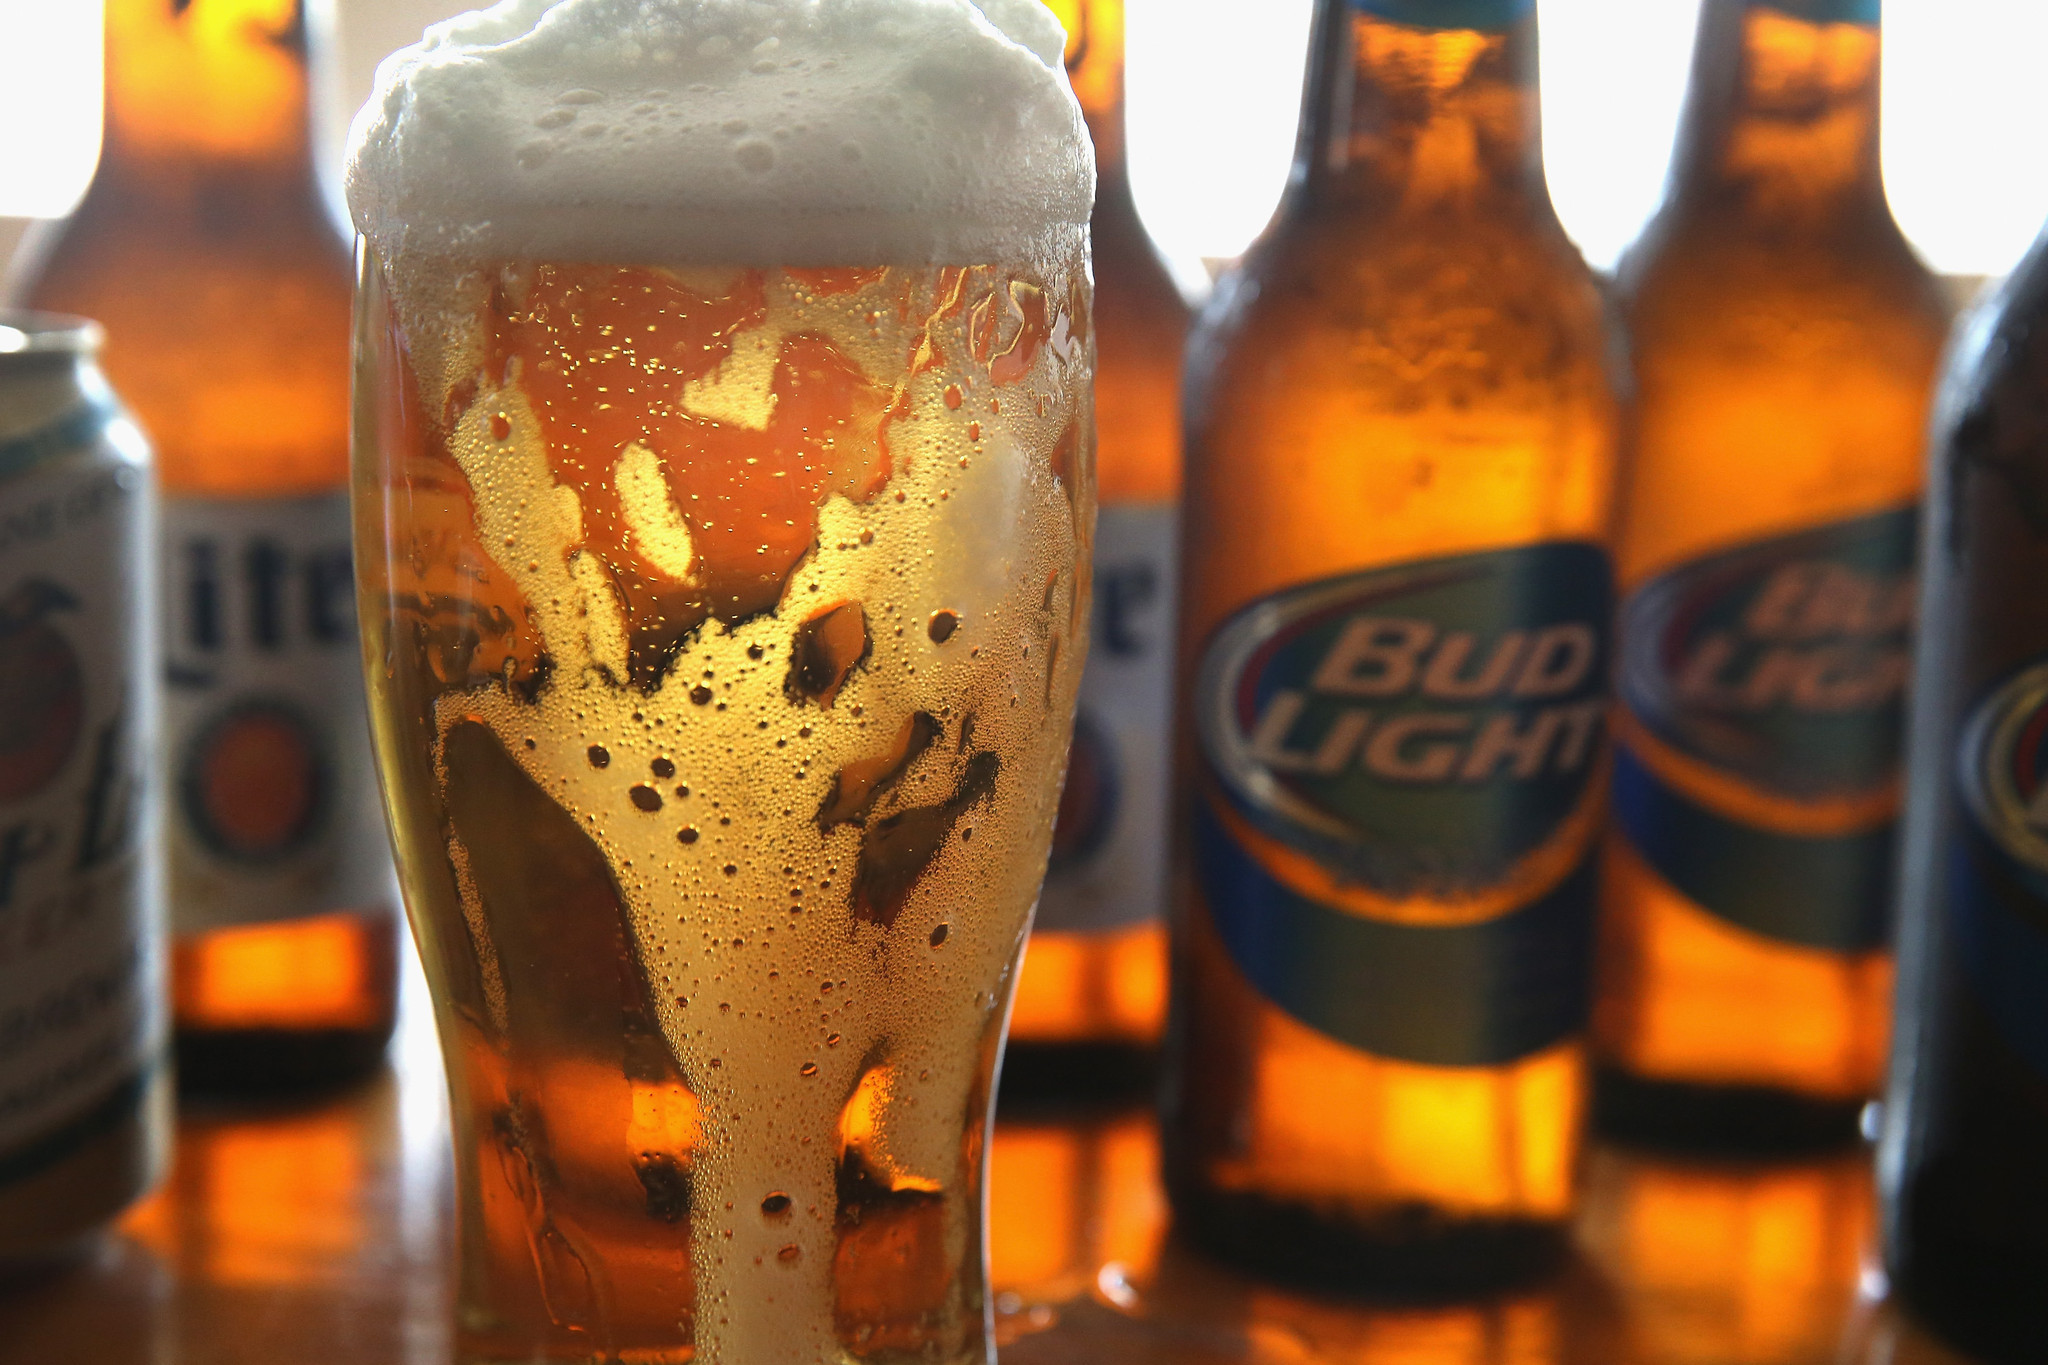 Beer merger likely to shake up global market, MillerCoors